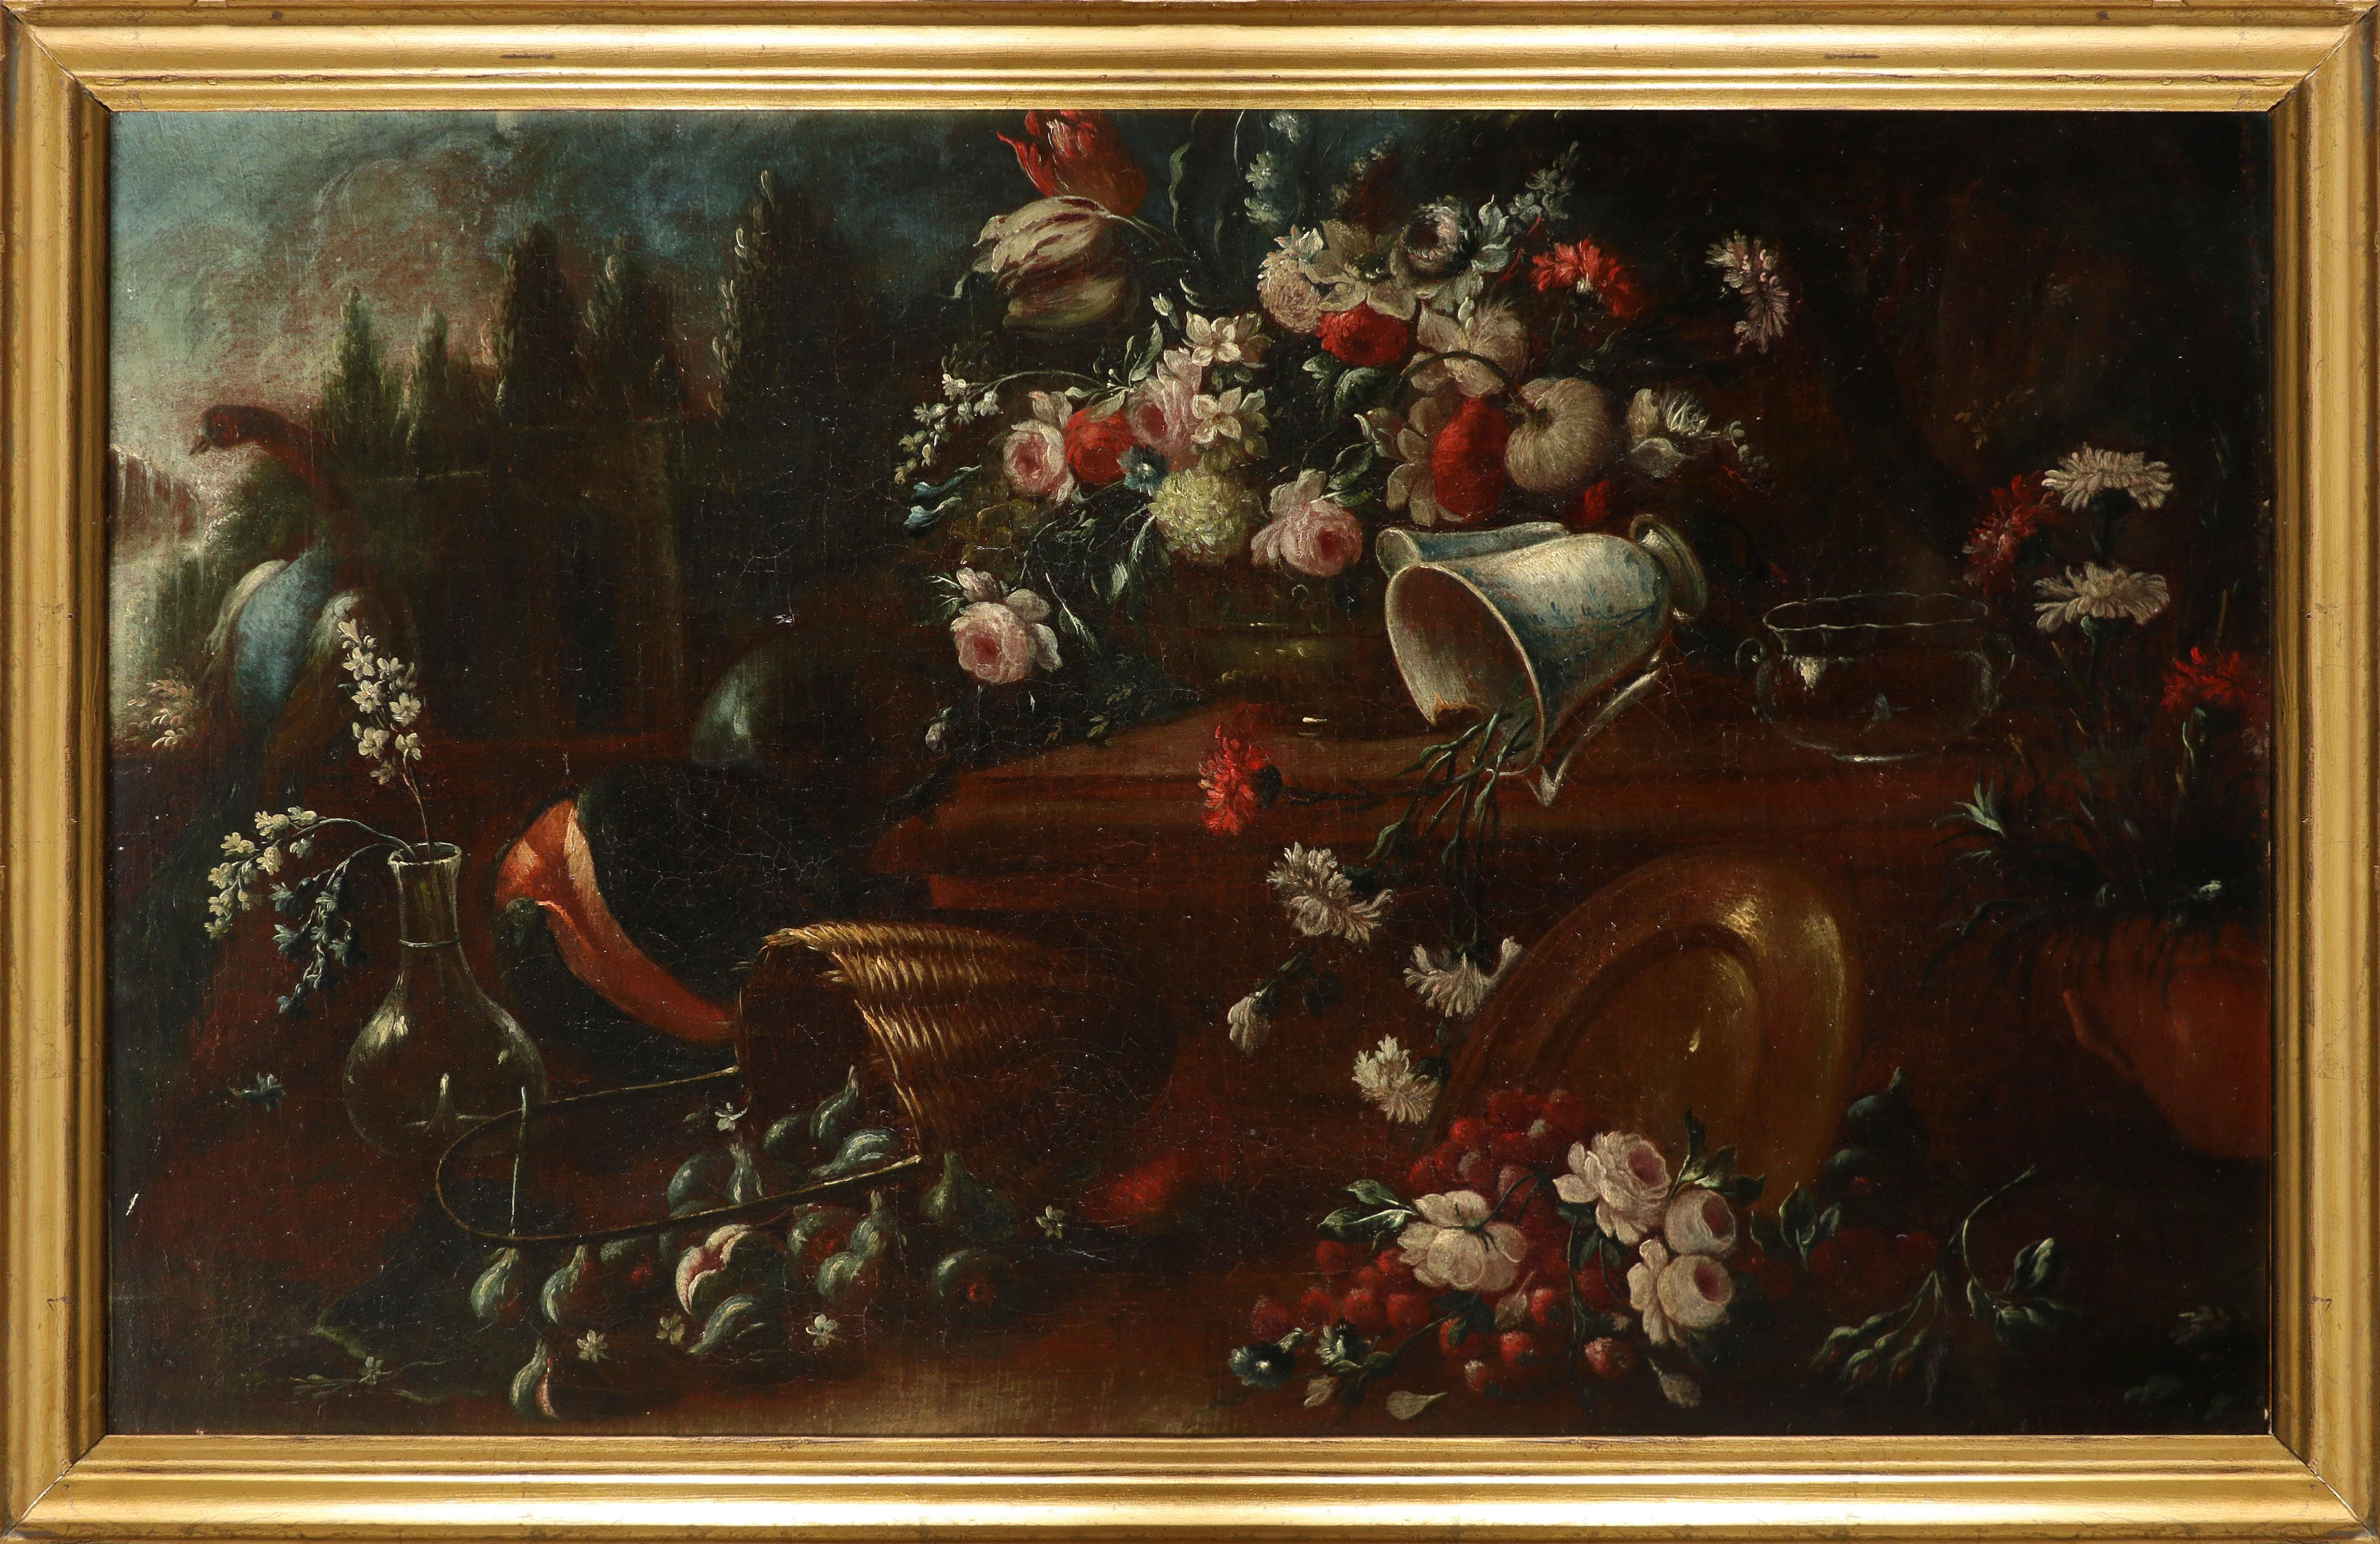 Follower of Pieter Casteels III Still life in an ornamental parkland, with flowers, burst fruit - Image 2 of 3